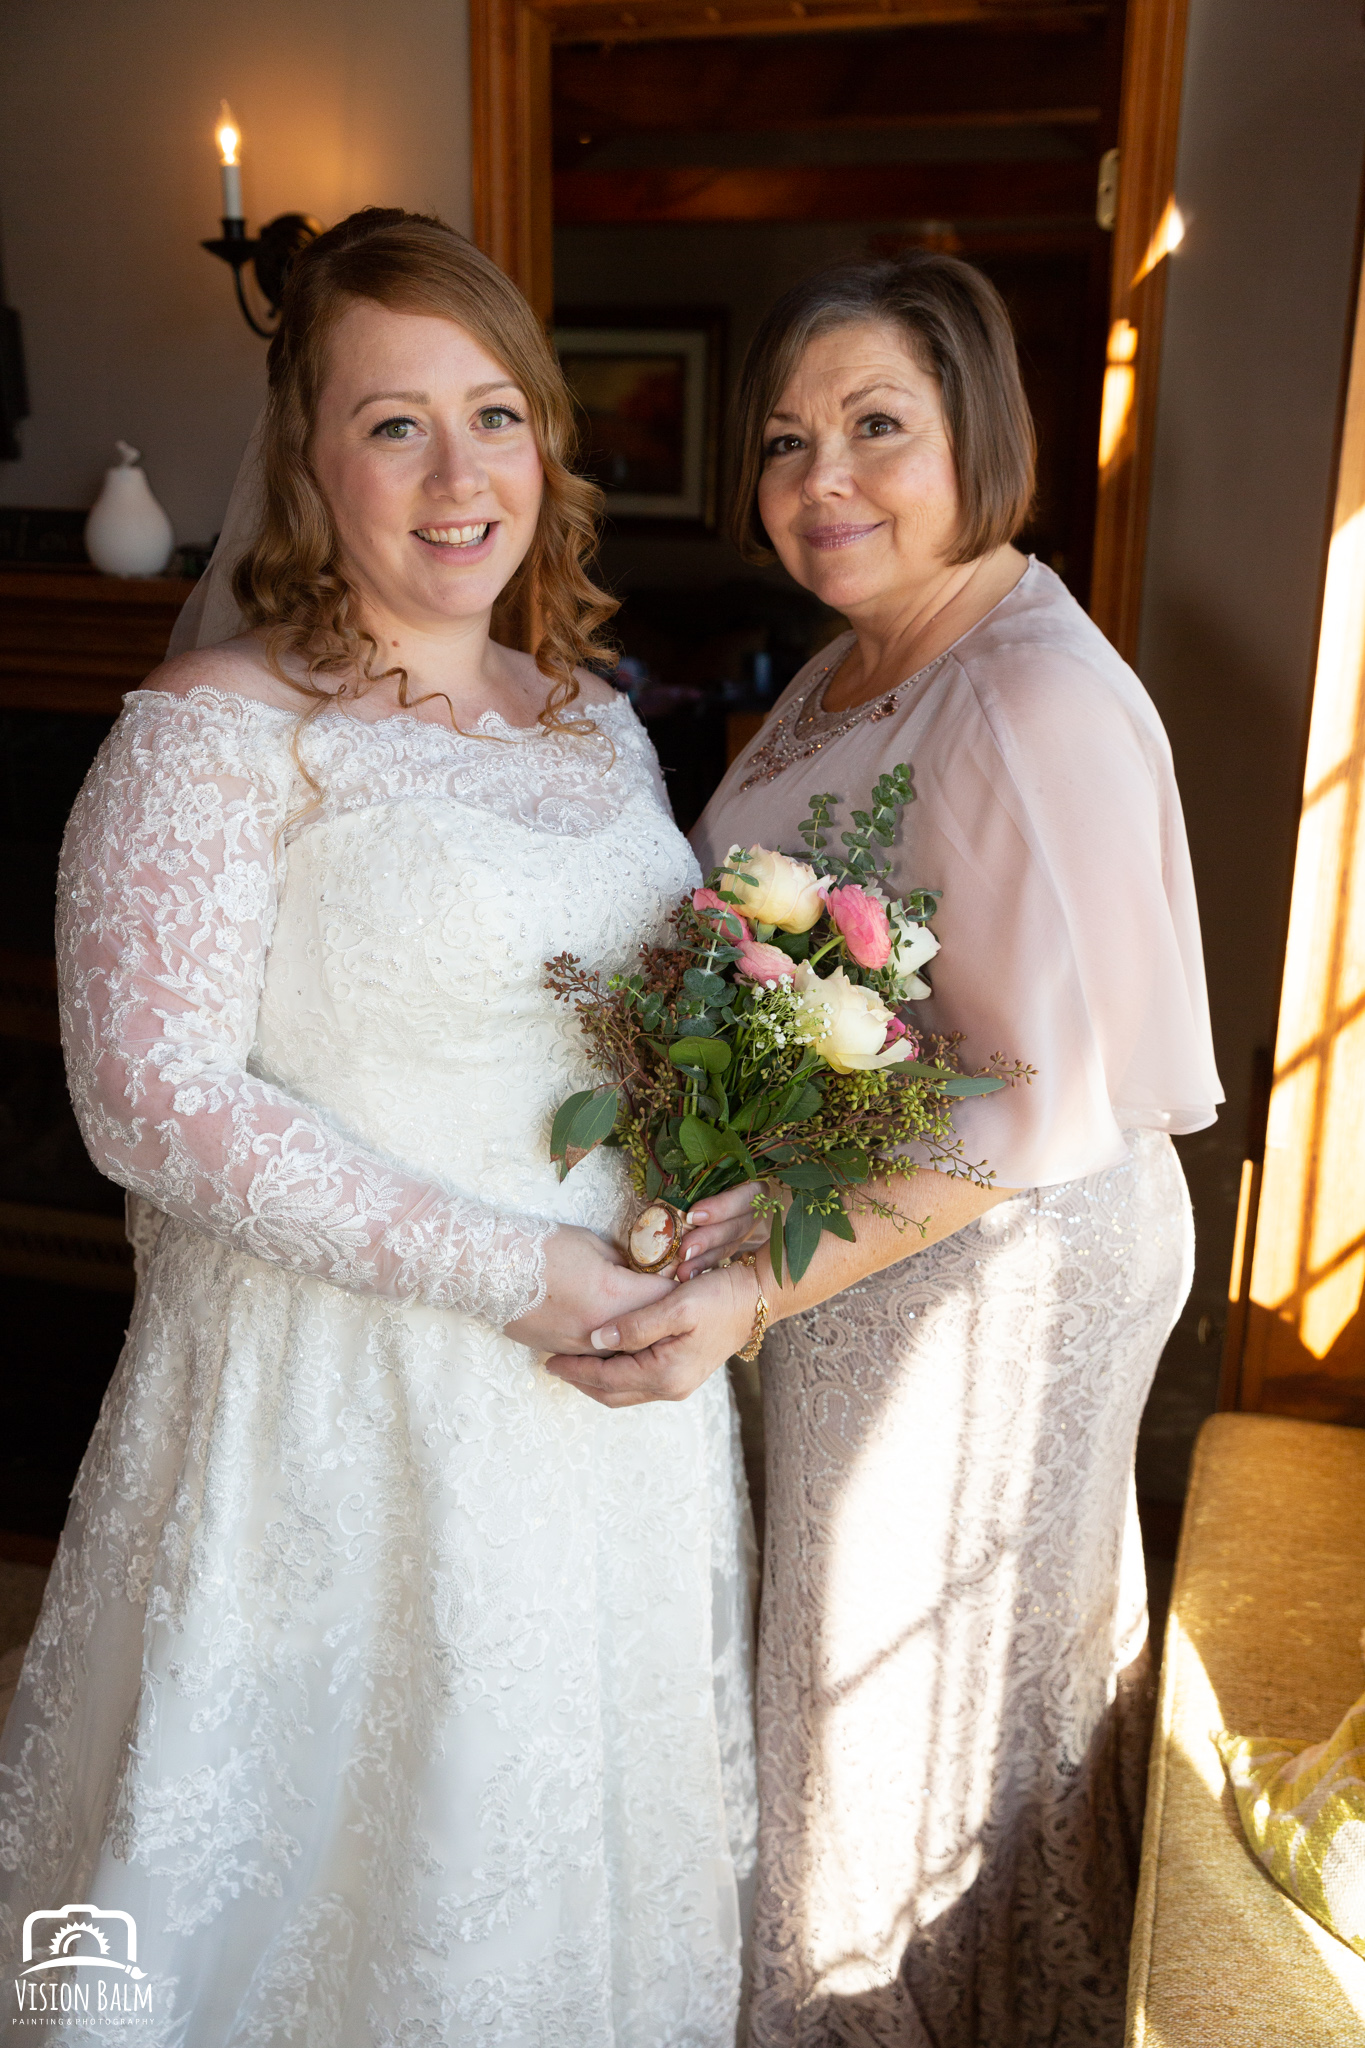 Lifestyle wedding photo of bride and her mom in Zuka's Hilltop Barn by Vision Balm in Charleston, SC.